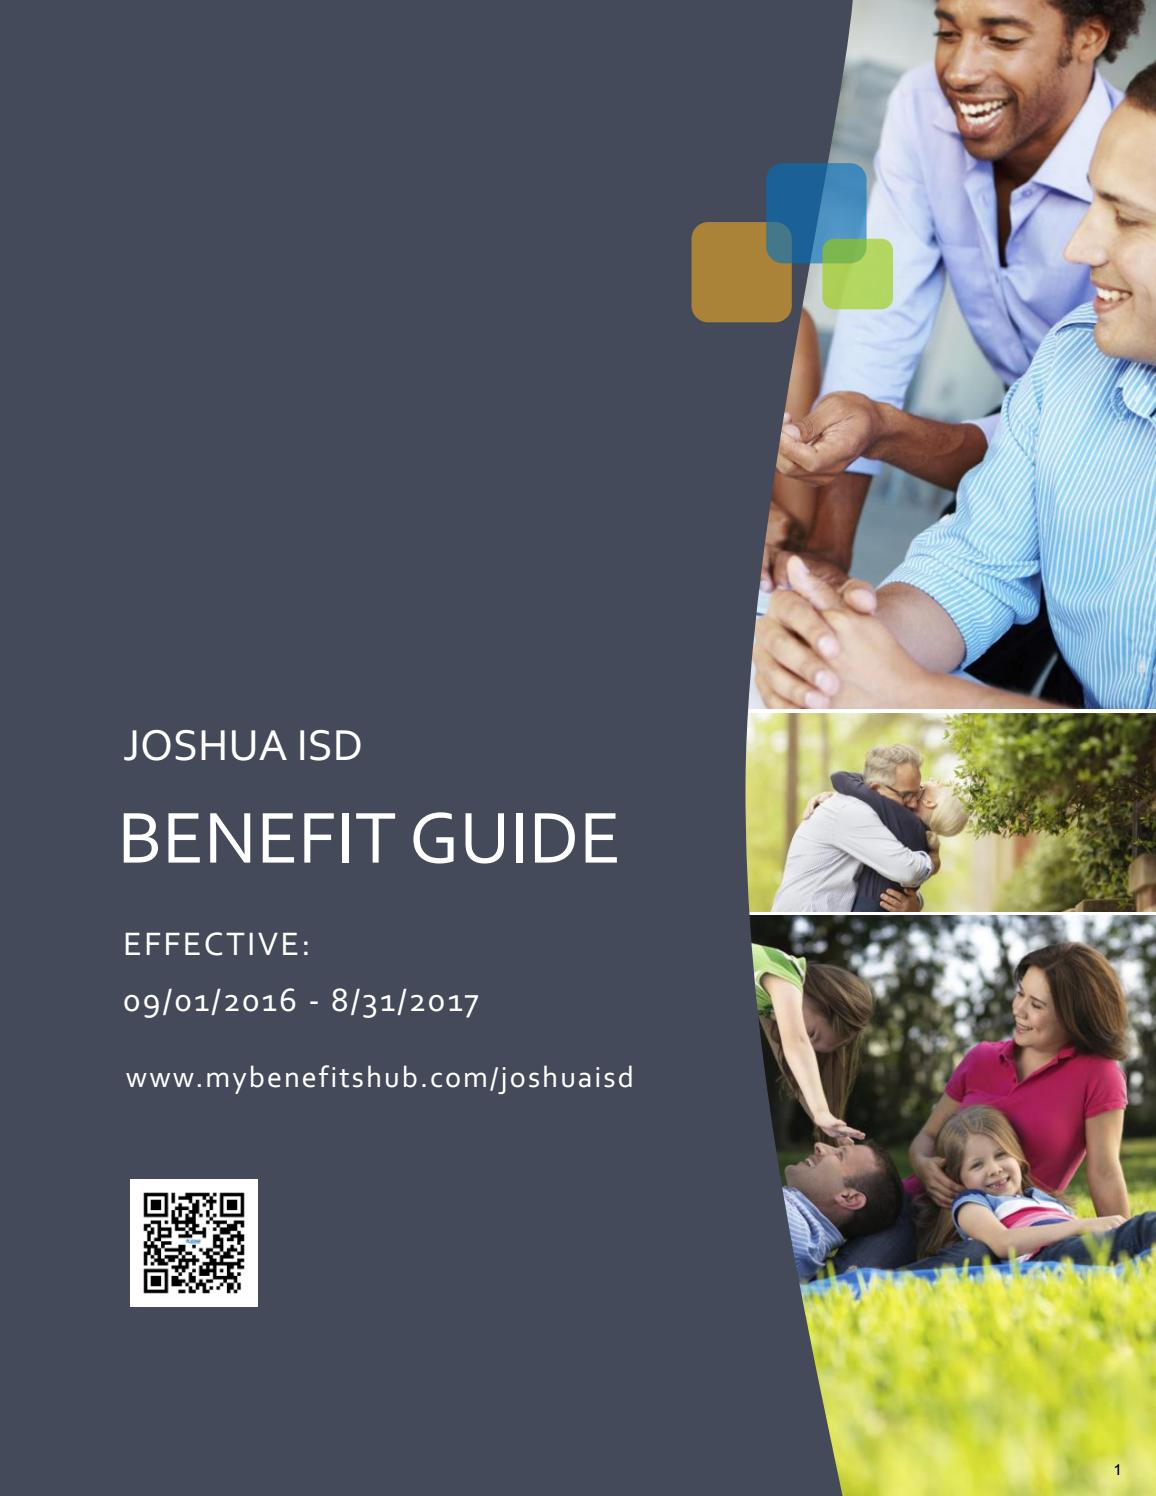 2016 Benefit Guide Joshua ISD by FBS